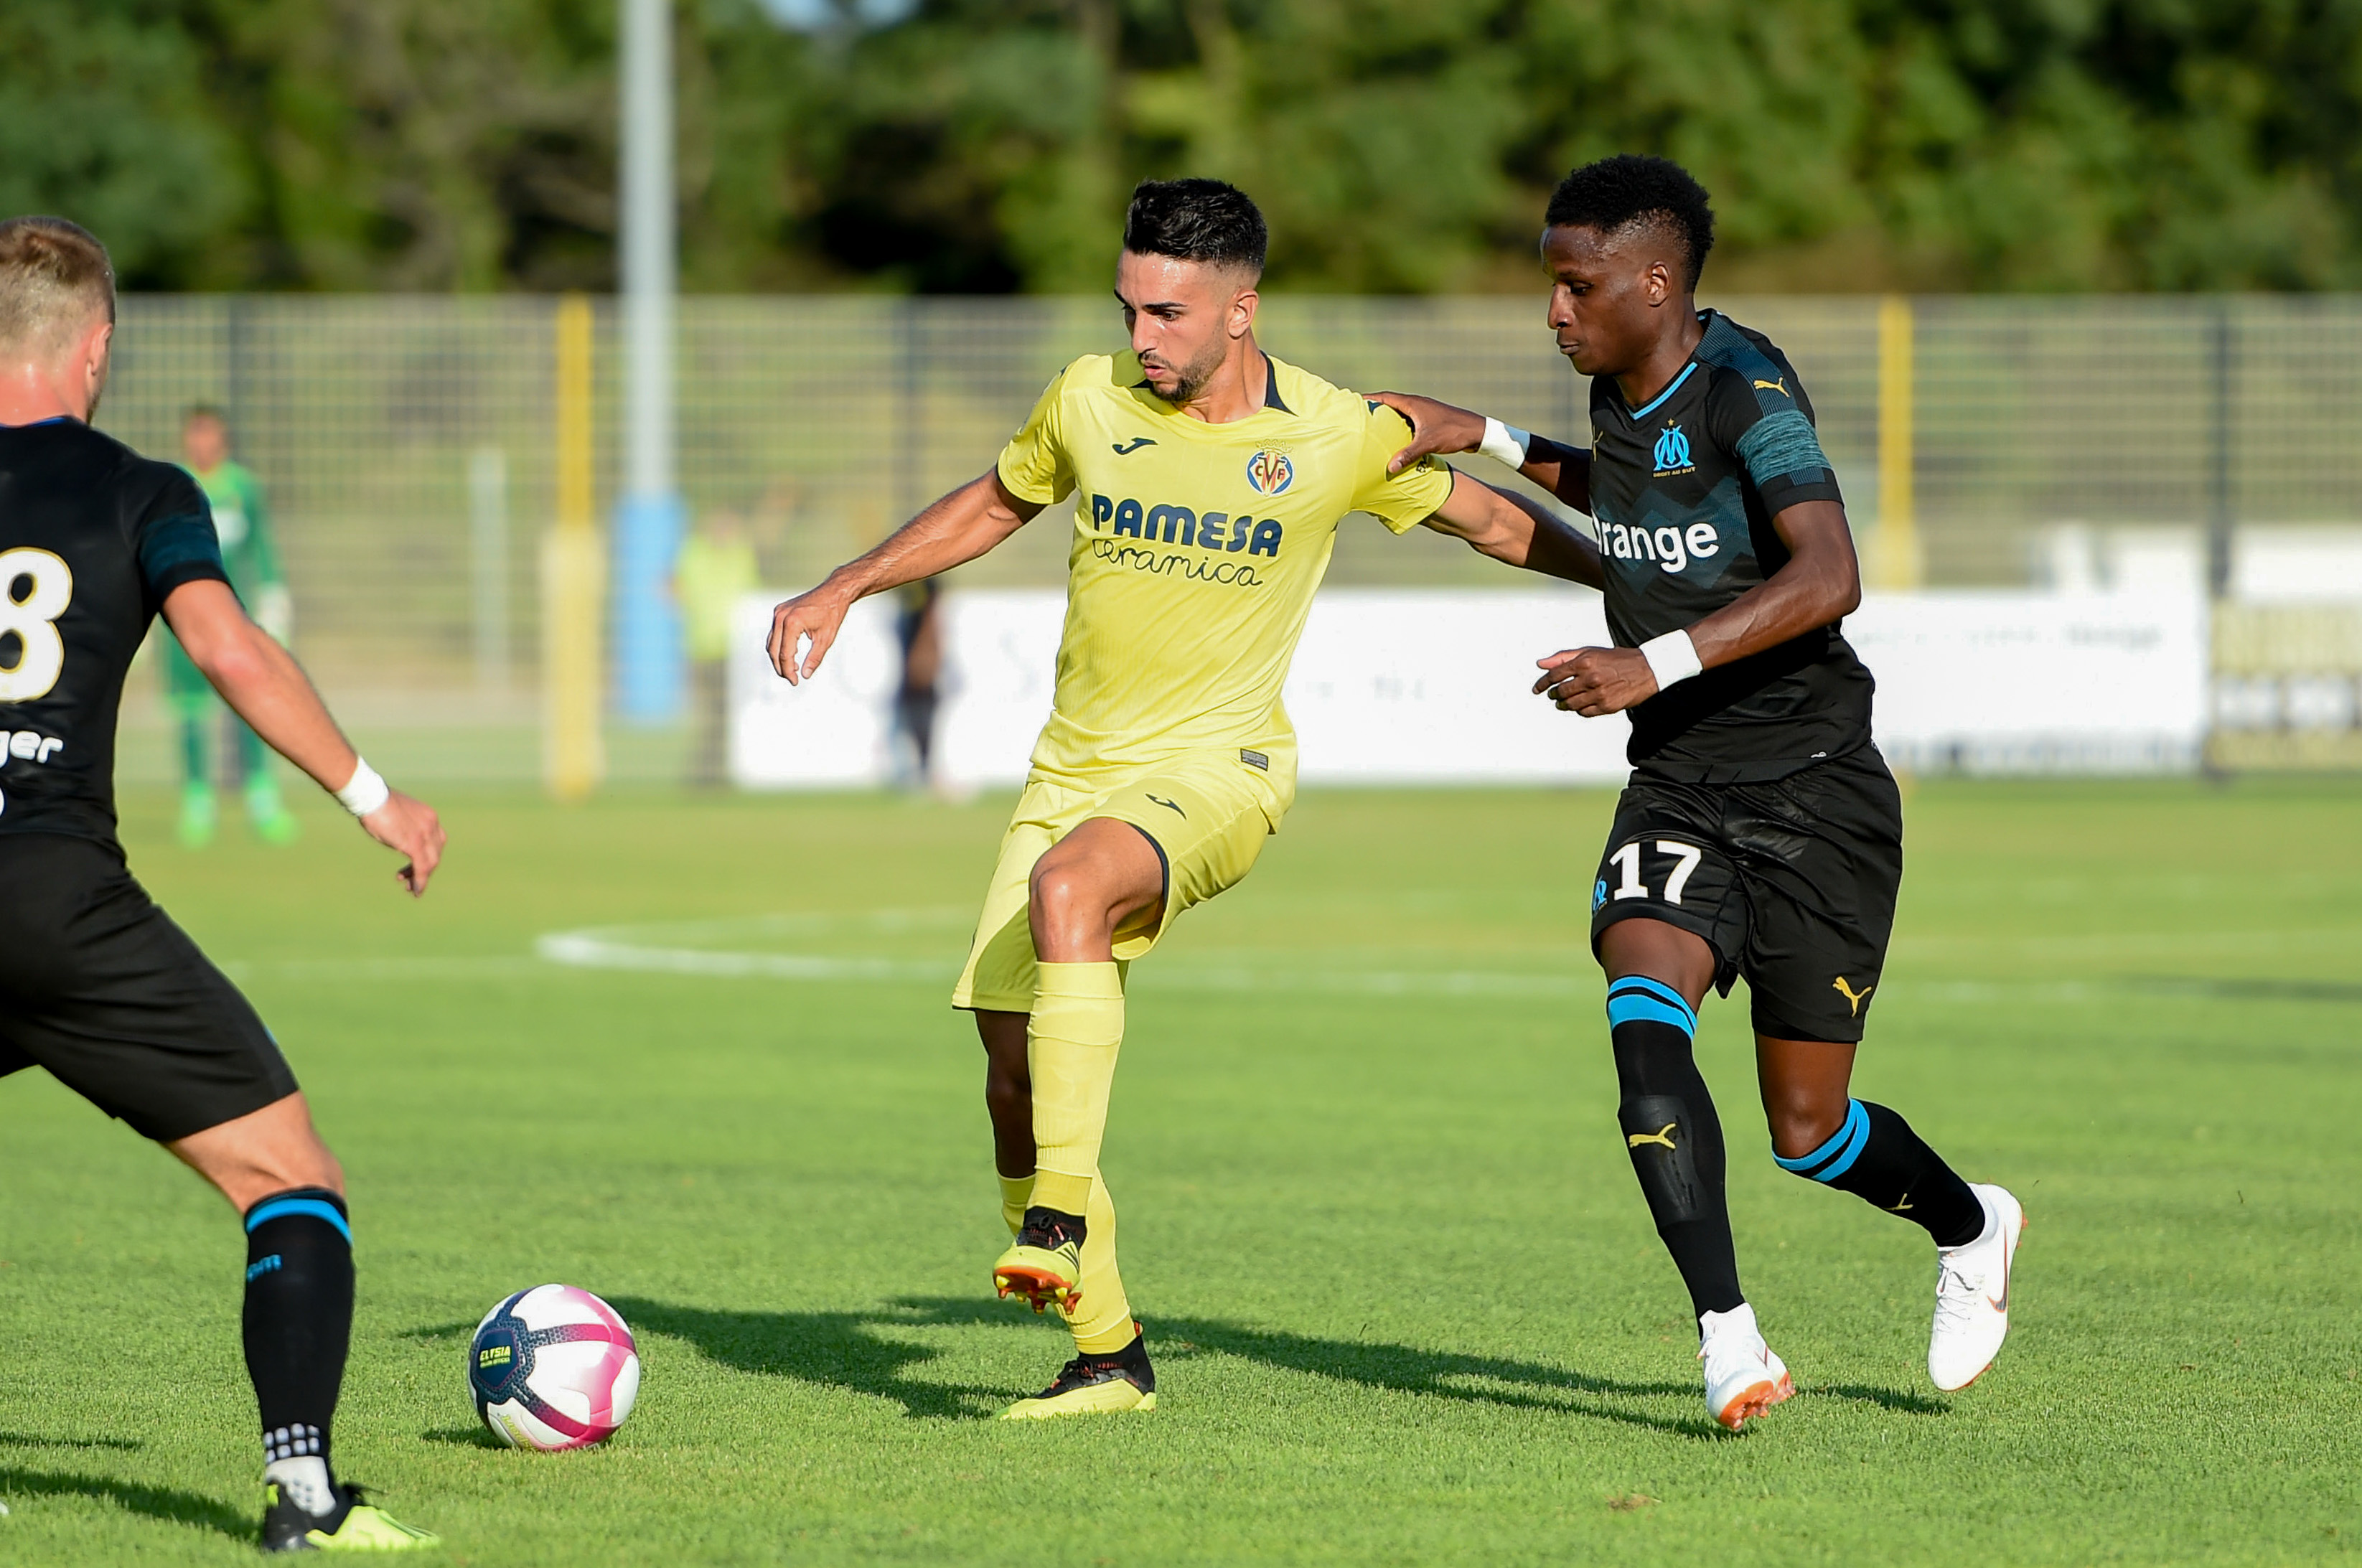 Olympique de Marseille v Villarreal - Friendly Match